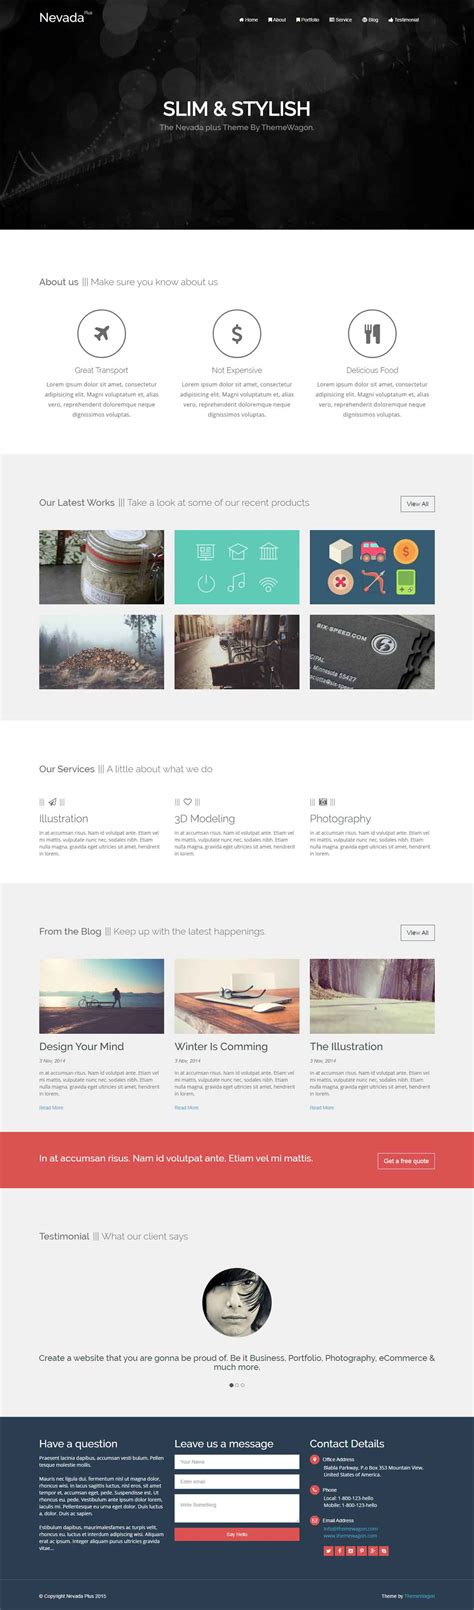 templates bootstrap agency nevada plus pro responsive html5 bootstrap agency template